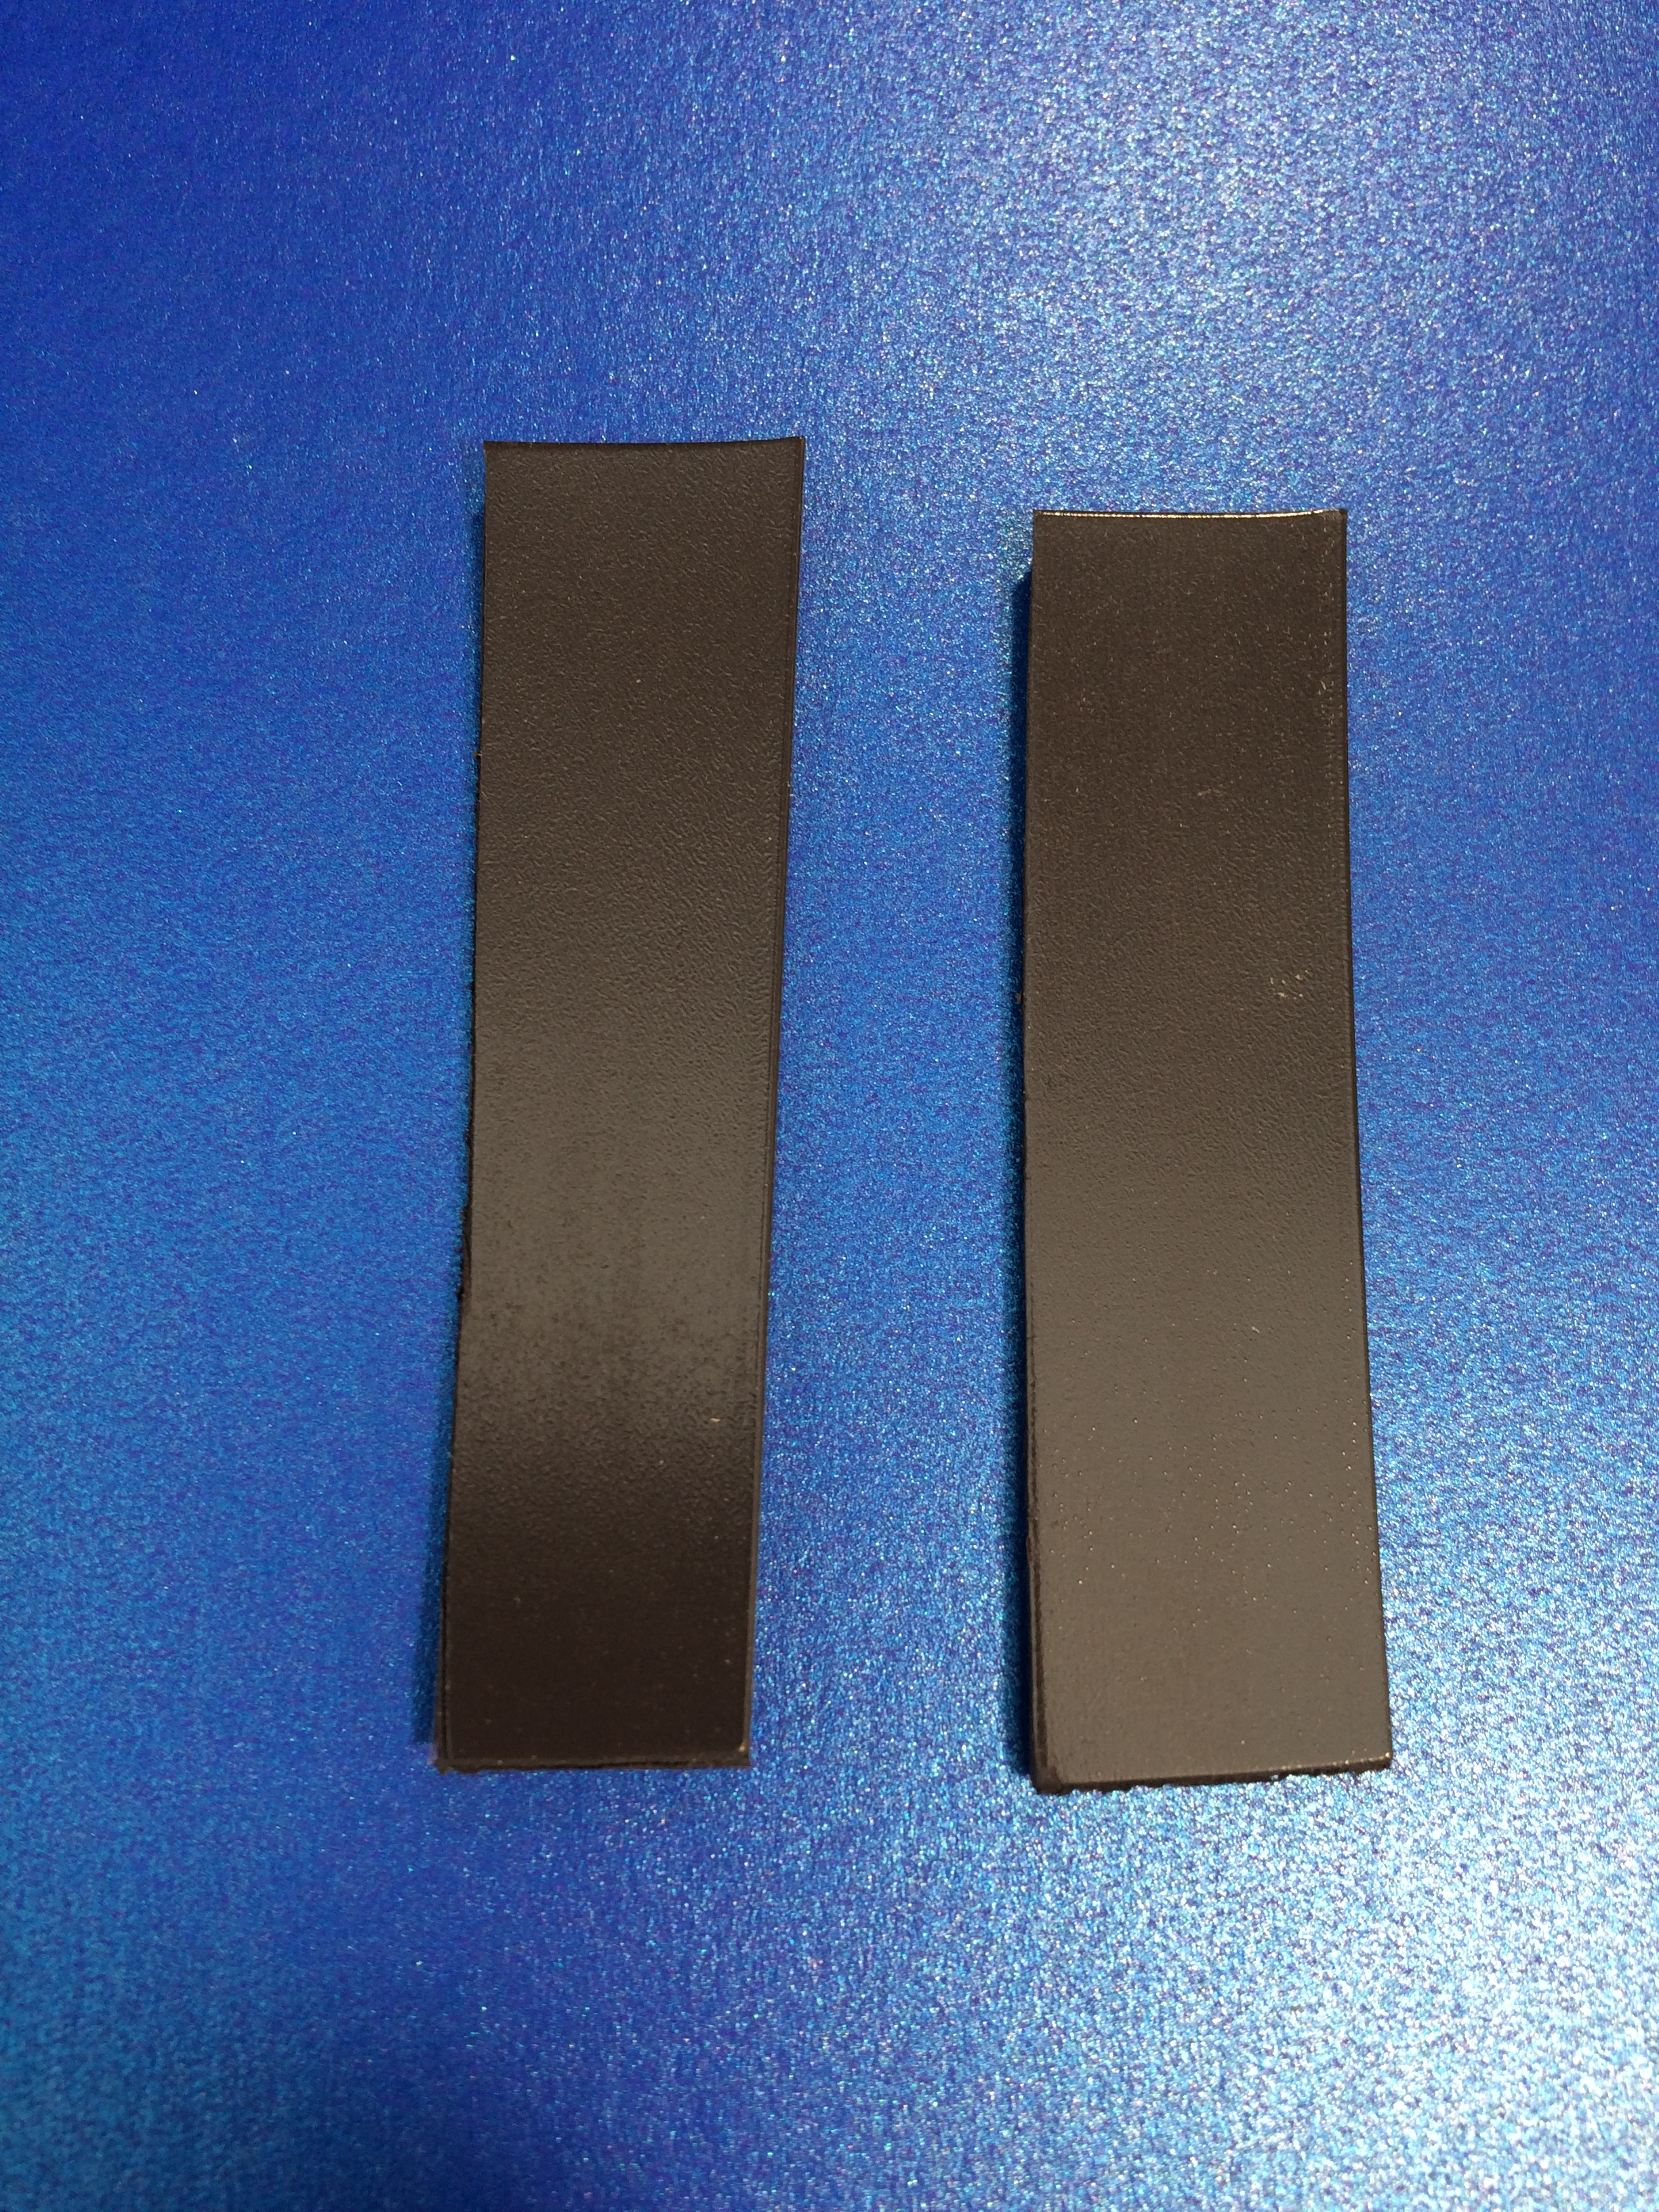 x2 Magnetic strips for ICON unit